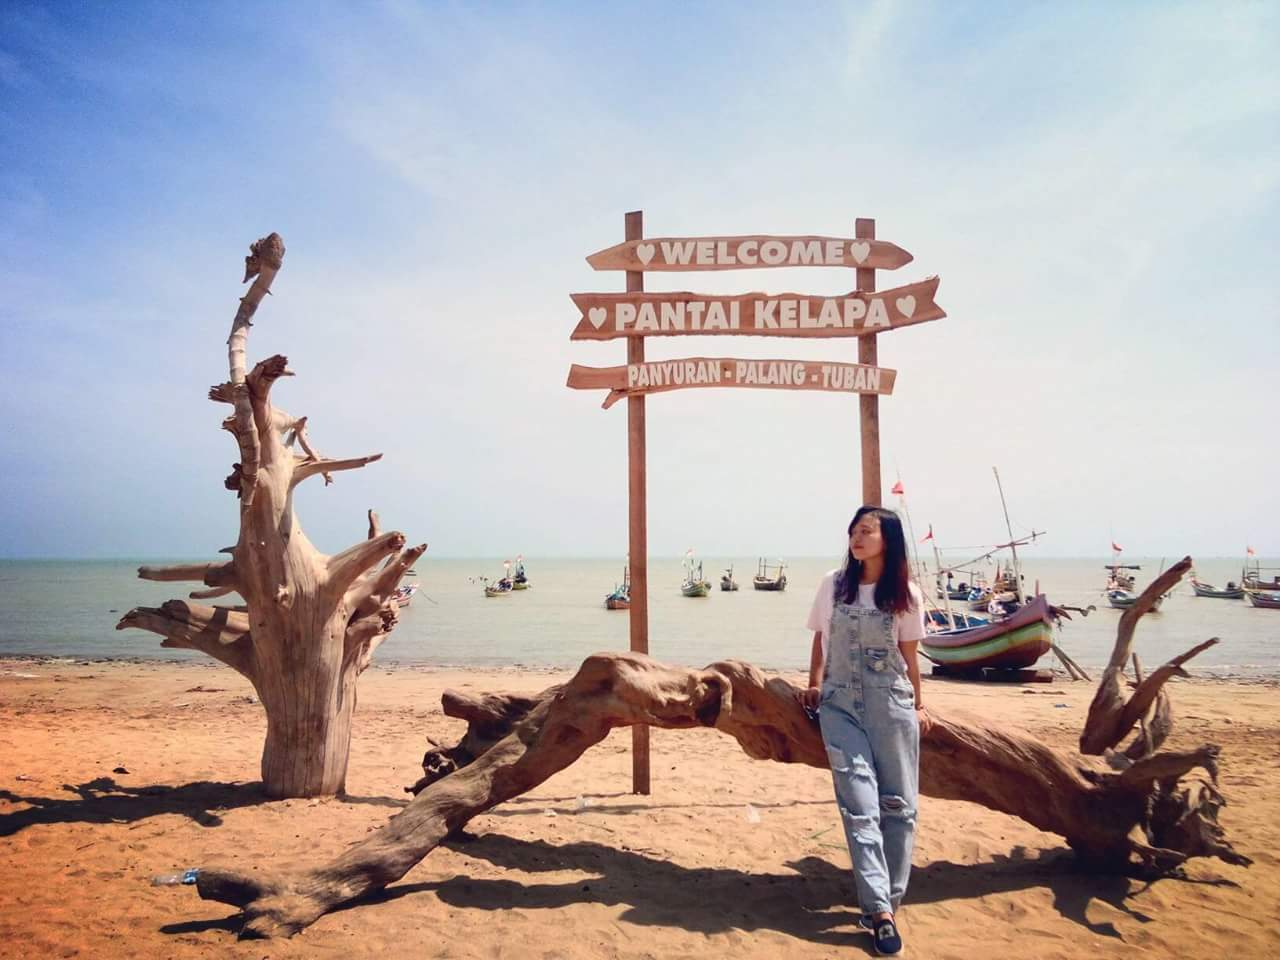 Local Guides Connect Local Guide Wisata Pantai Kelapa Panyuran Tuban Local Guides Connect